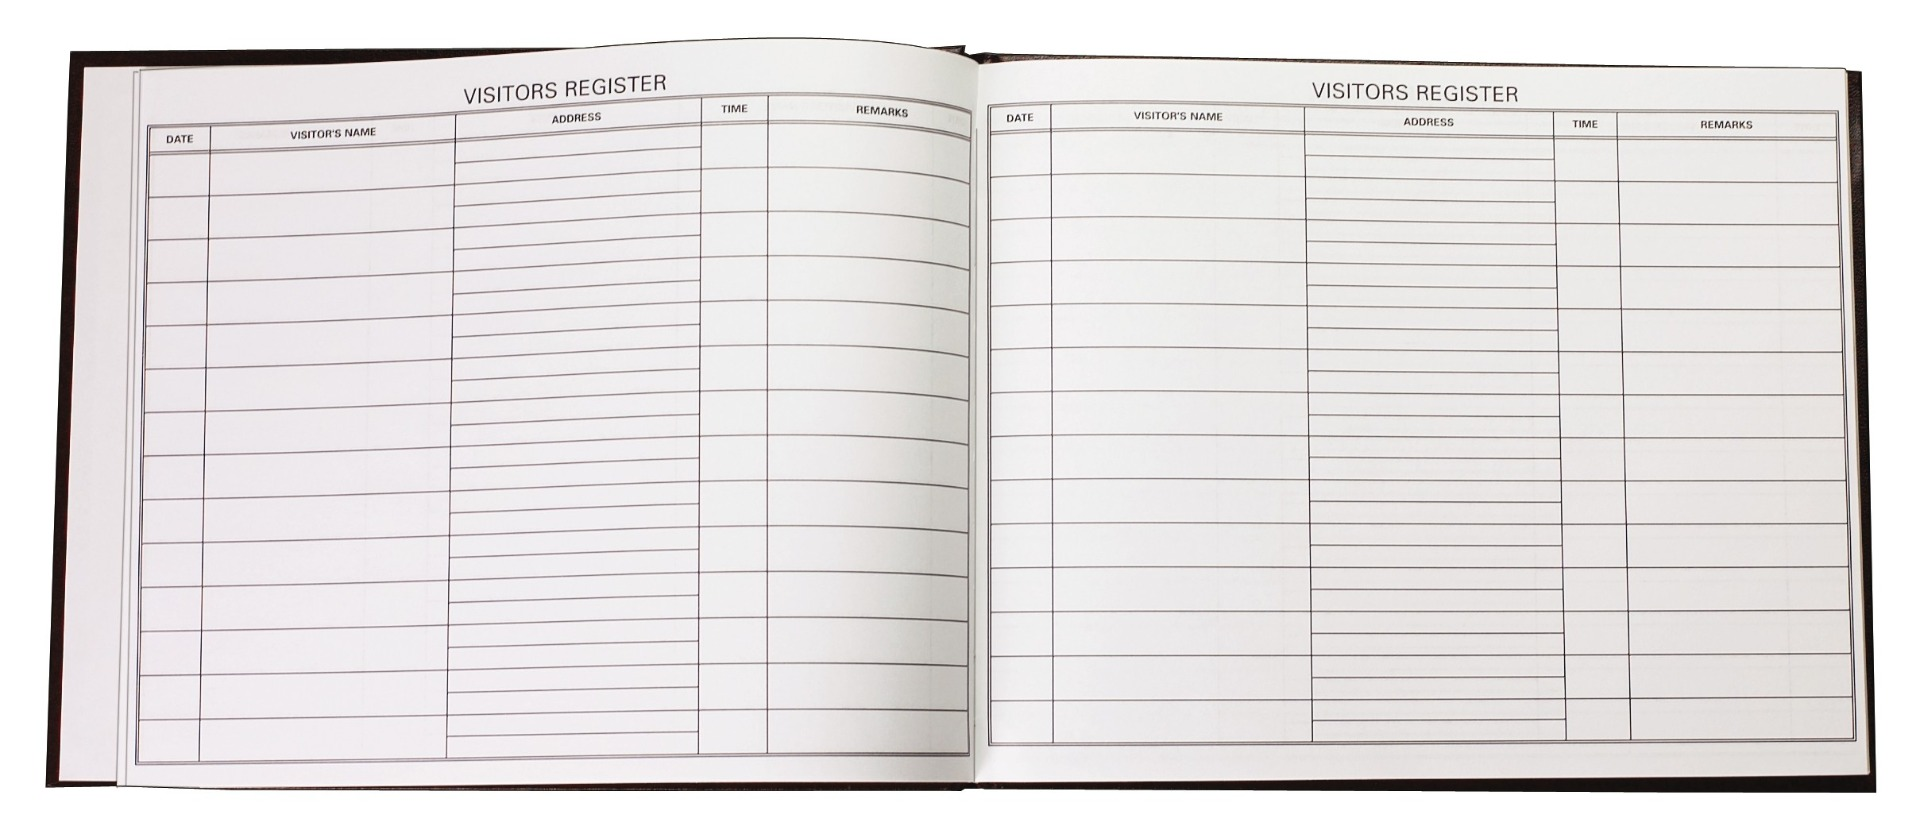 Visitor Register-Rexine Binding, 288 Pages 6 Qr